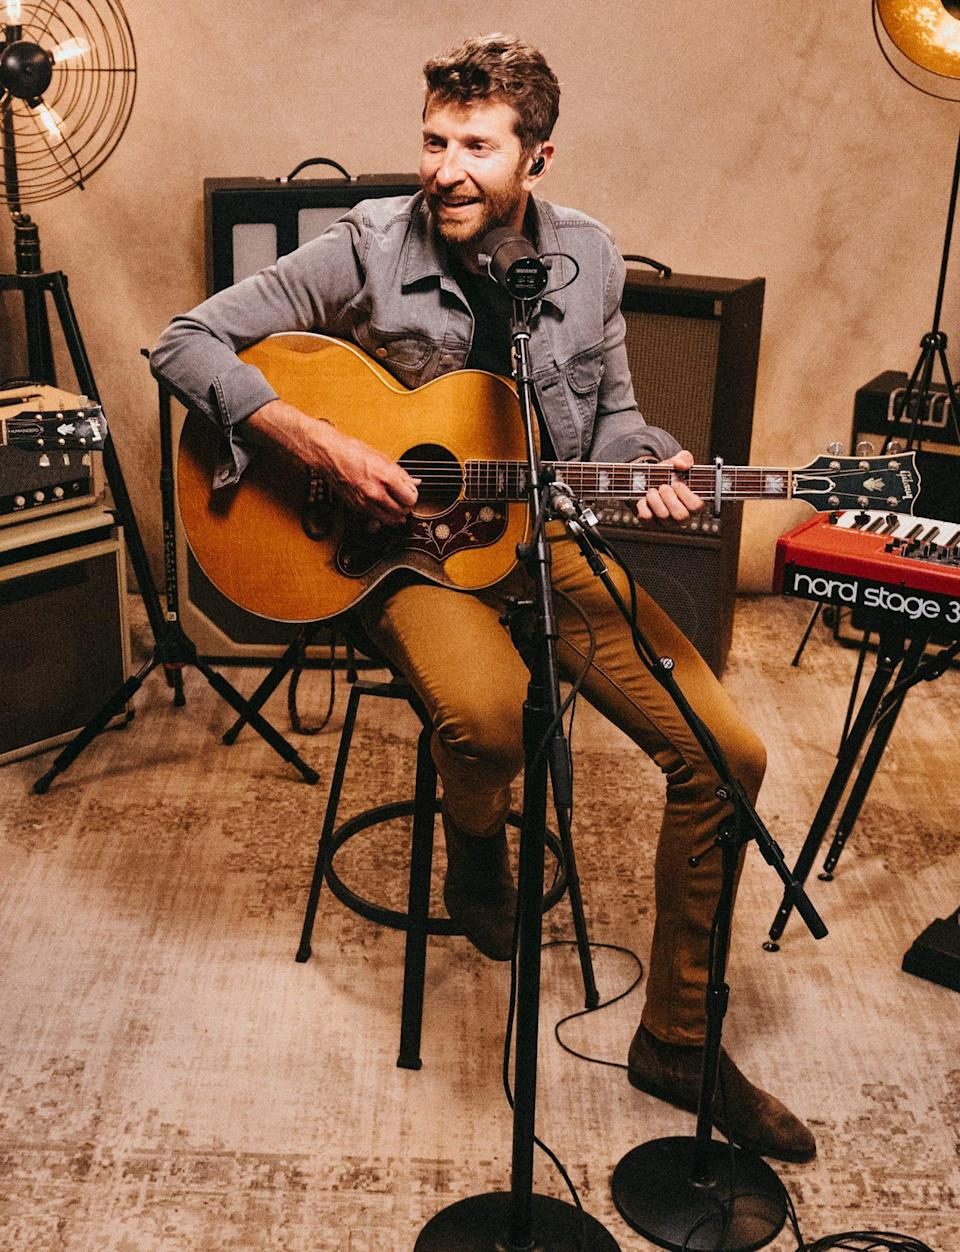 <p>Brett Eldredge gets warmed up ahead of his <em>Sunday Drive </em>performance during the first-ever Chase virtual soundcheck, streaming in partnership with the Chicago Theatre at 8 p.m. ET Thursday night via social media.</p>